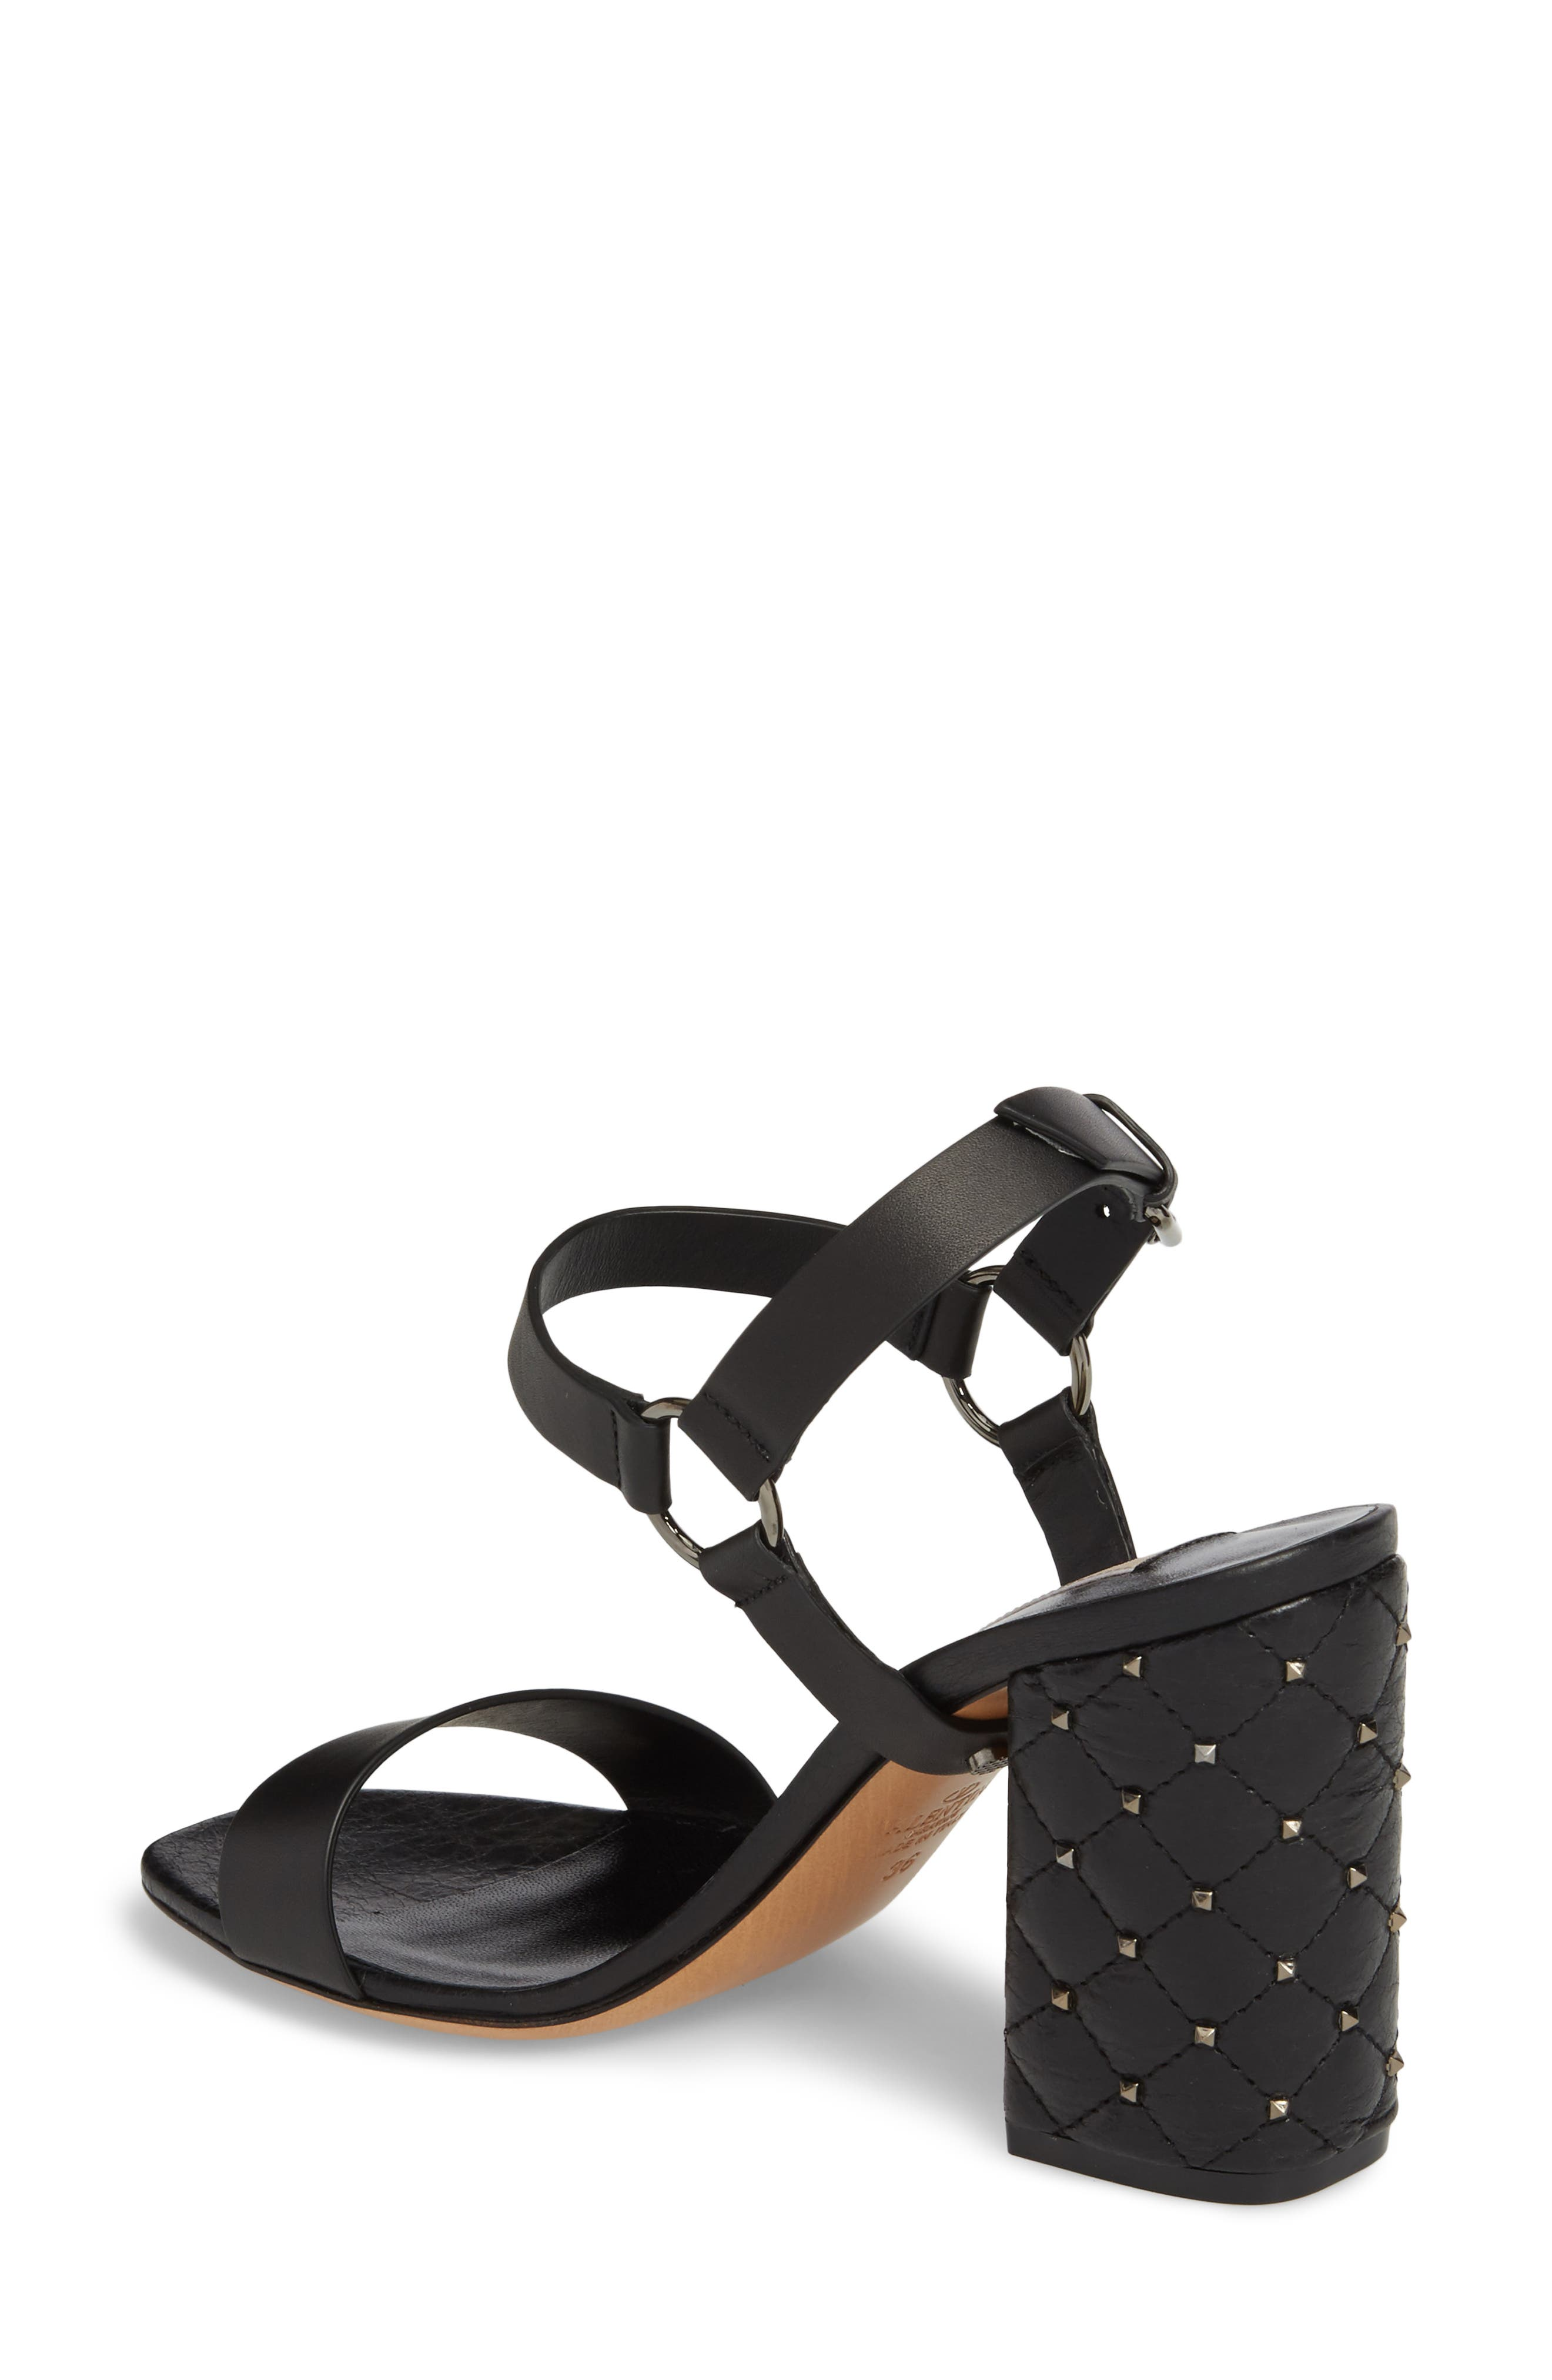 Rockstud Sandal,                             Alternate thumbnail 2, color,                             001